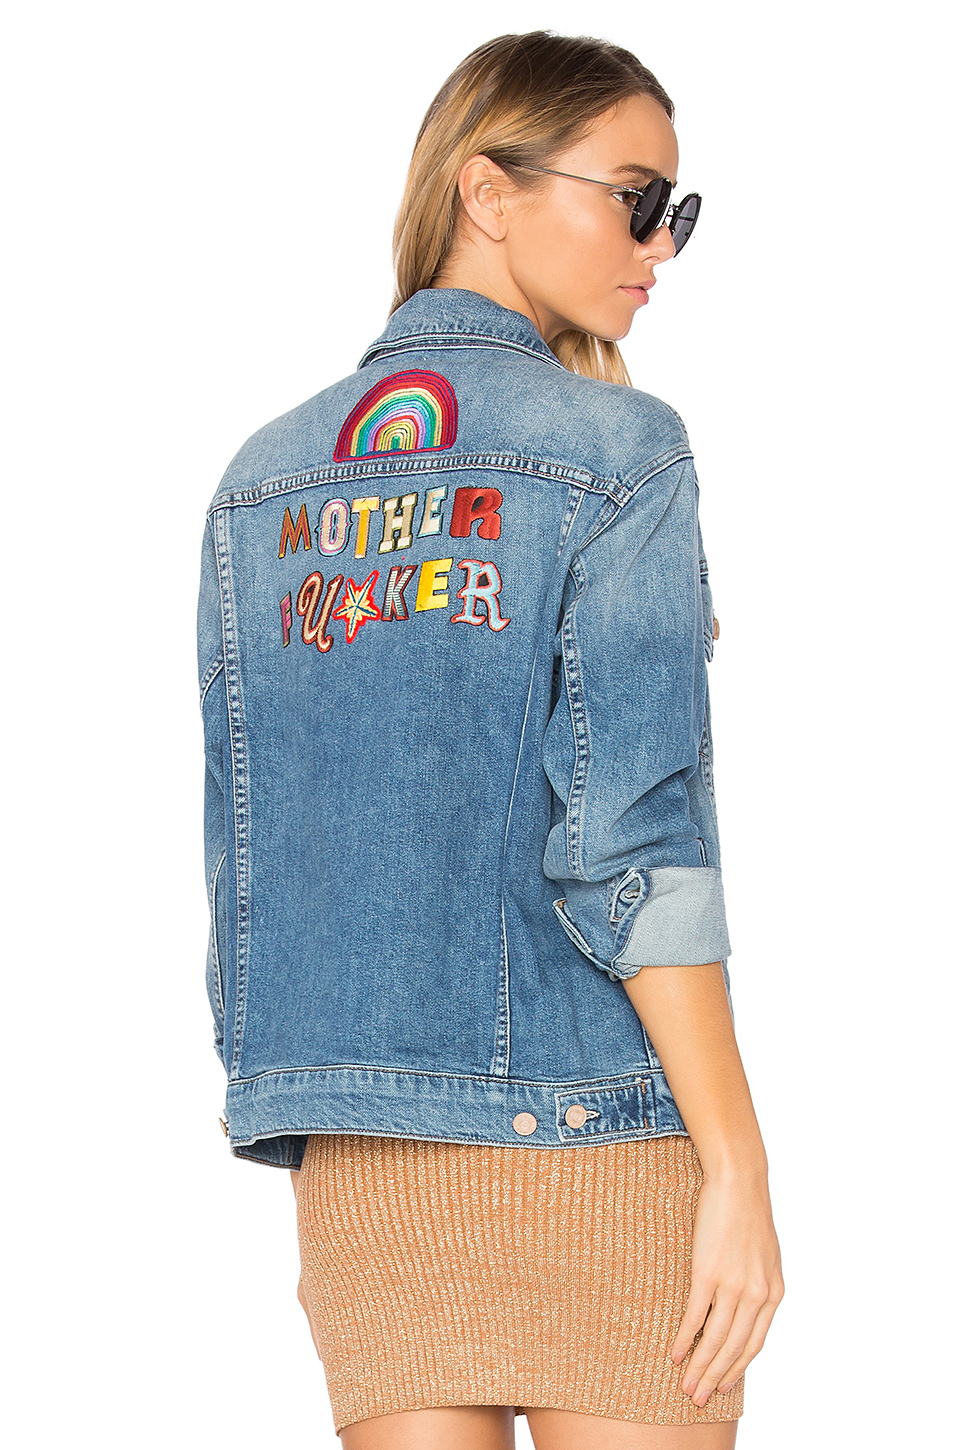 THE DRIFTER EMBROIDERED DENIM JACKET